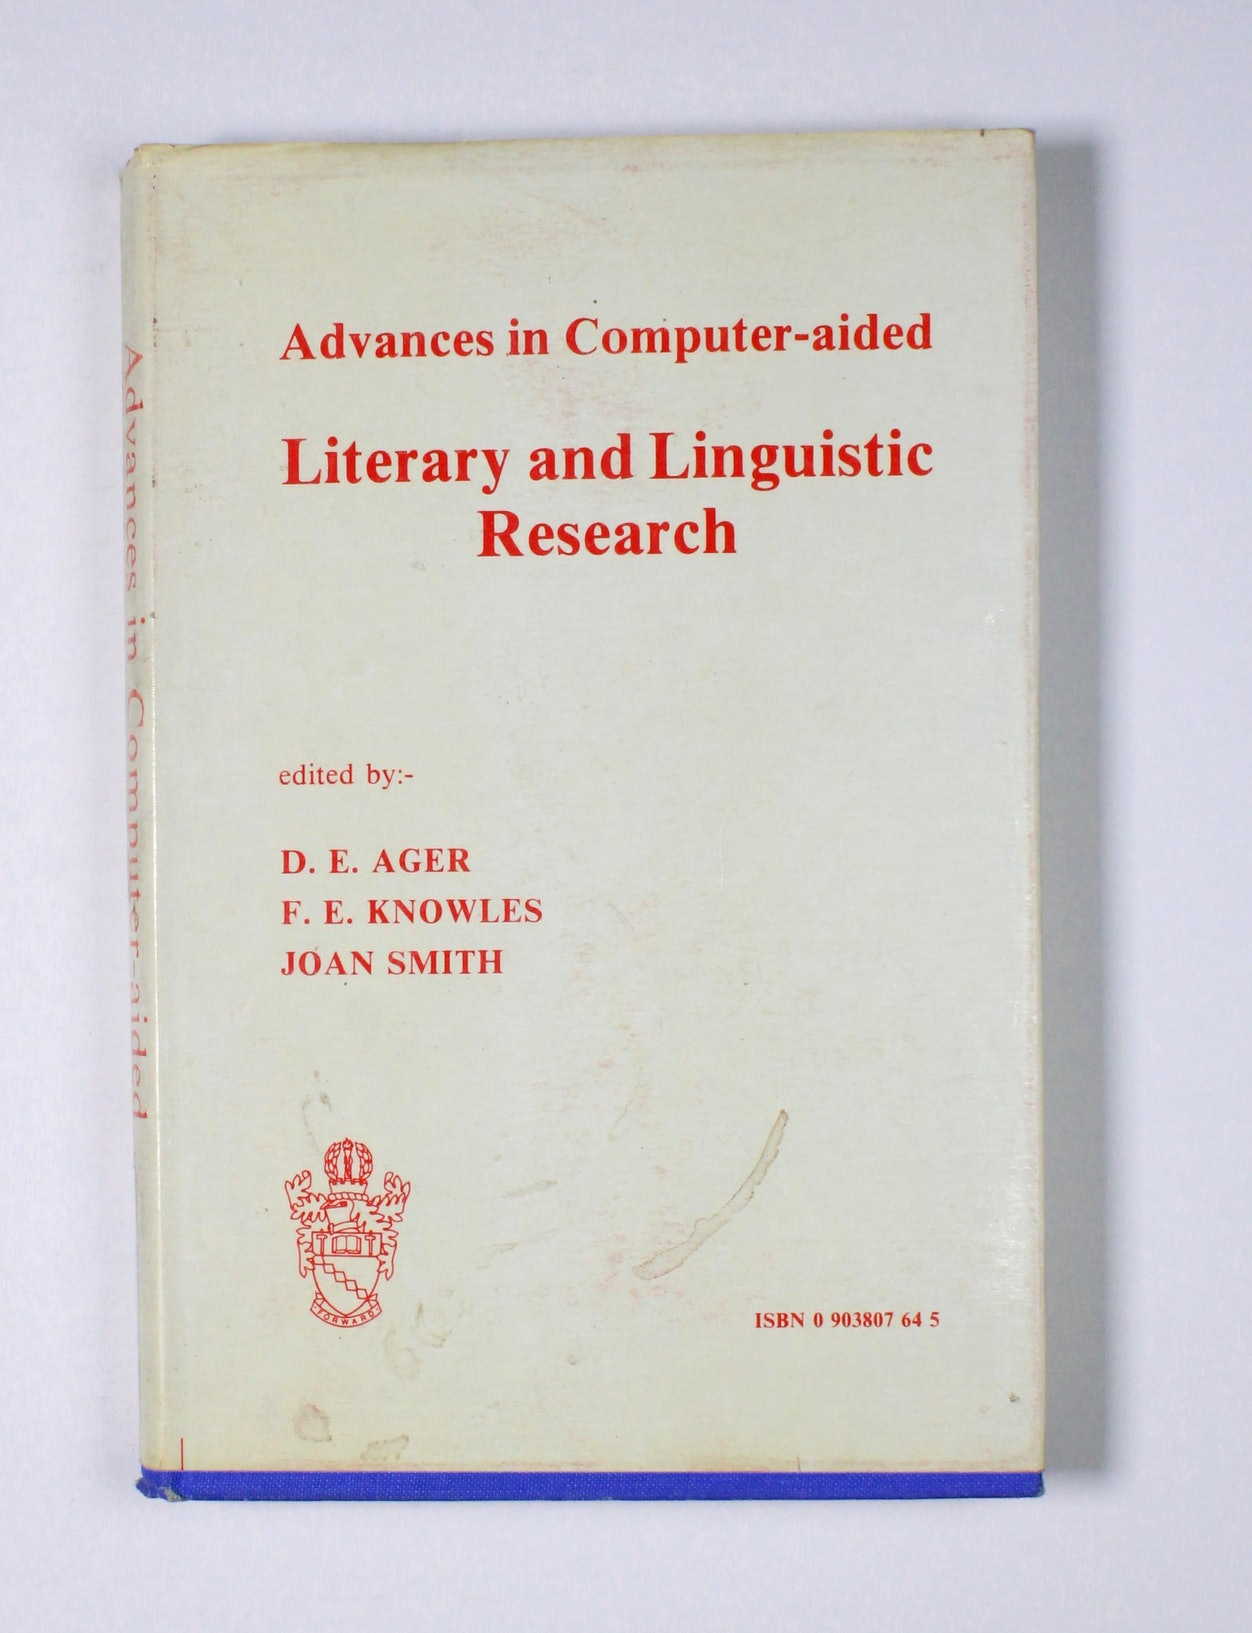 Advances in Computer-aided Literary and Linguistic Research